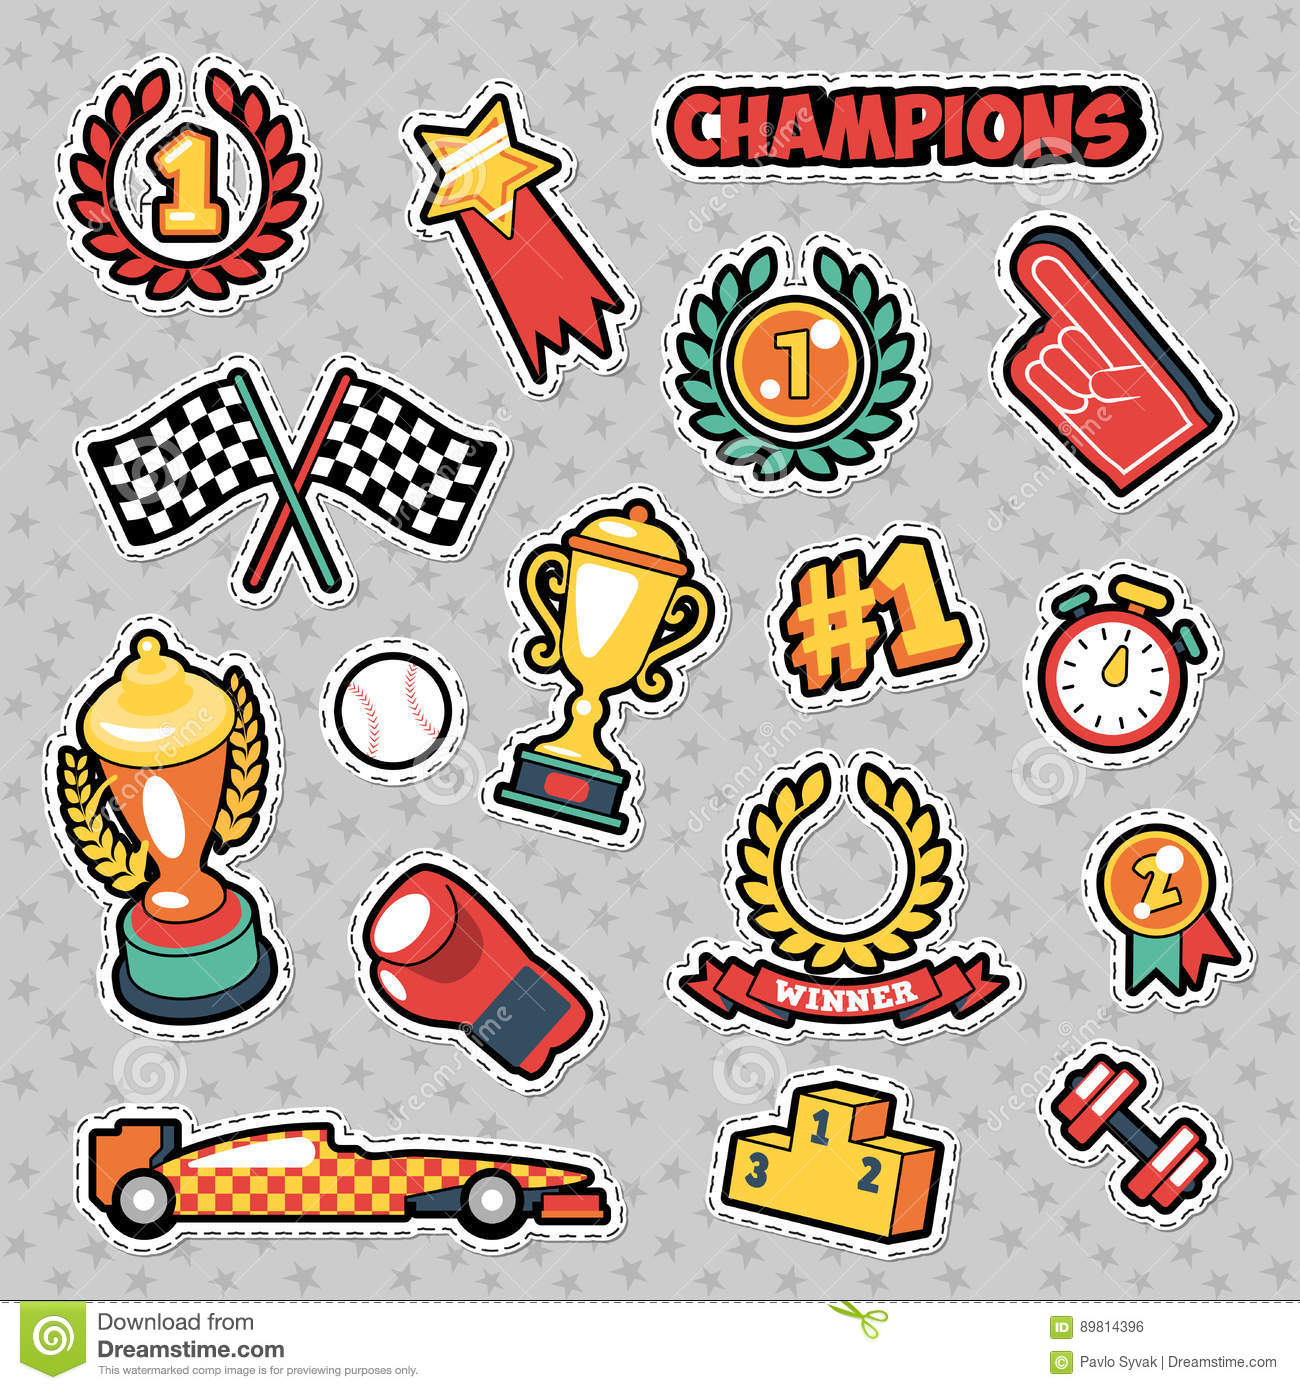 fashion badges patches stickers in comic style champions theme